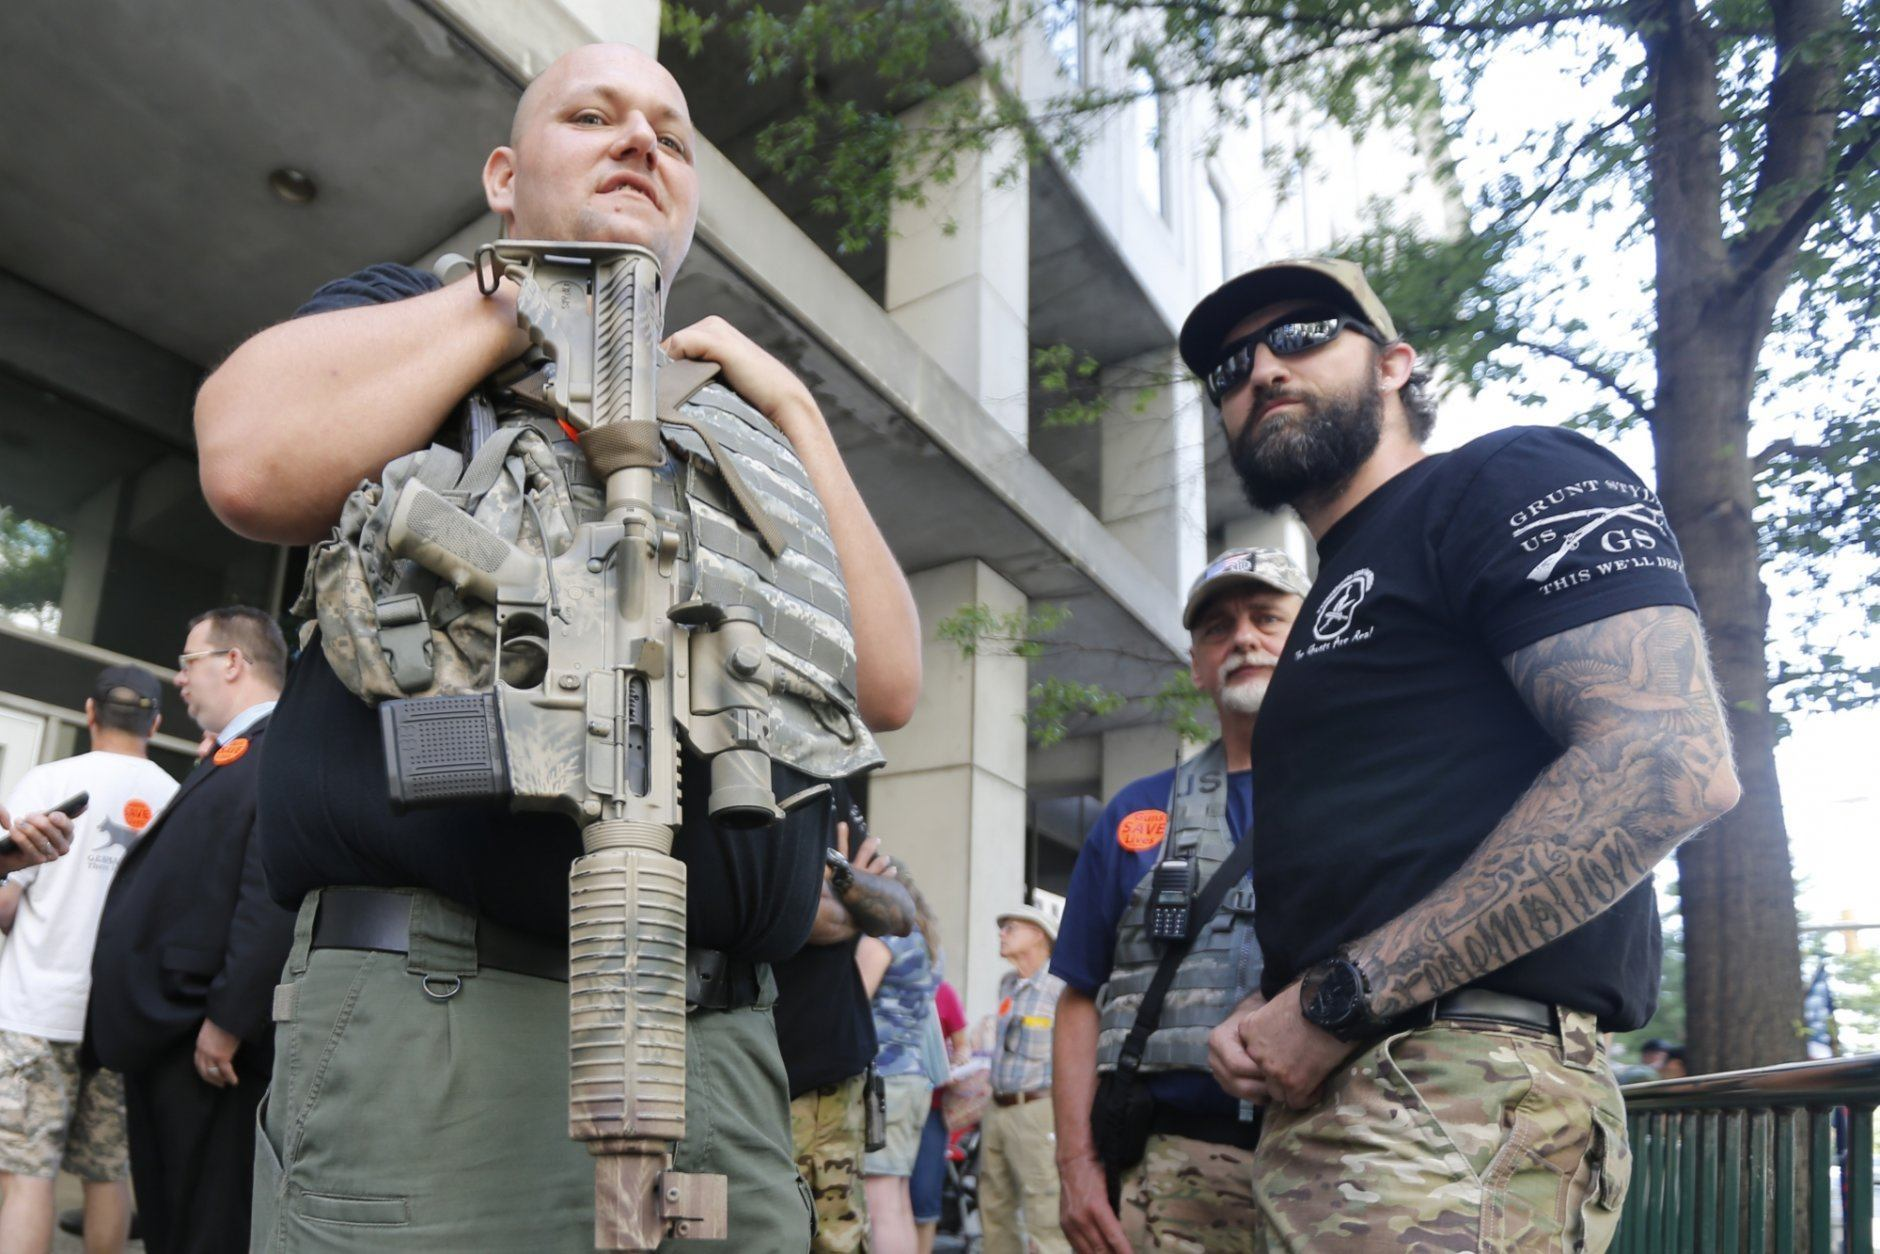 Gun rights supporters hold weapons outside the Capitol office building at the State Capitol in Richmond, Va., Tuesday, July 9, 2019. Governor Northam called a special session of the General Assembly to consider gun legislation in light of the Virginia Beach Shootings. (AP Photo/Steve Helber)